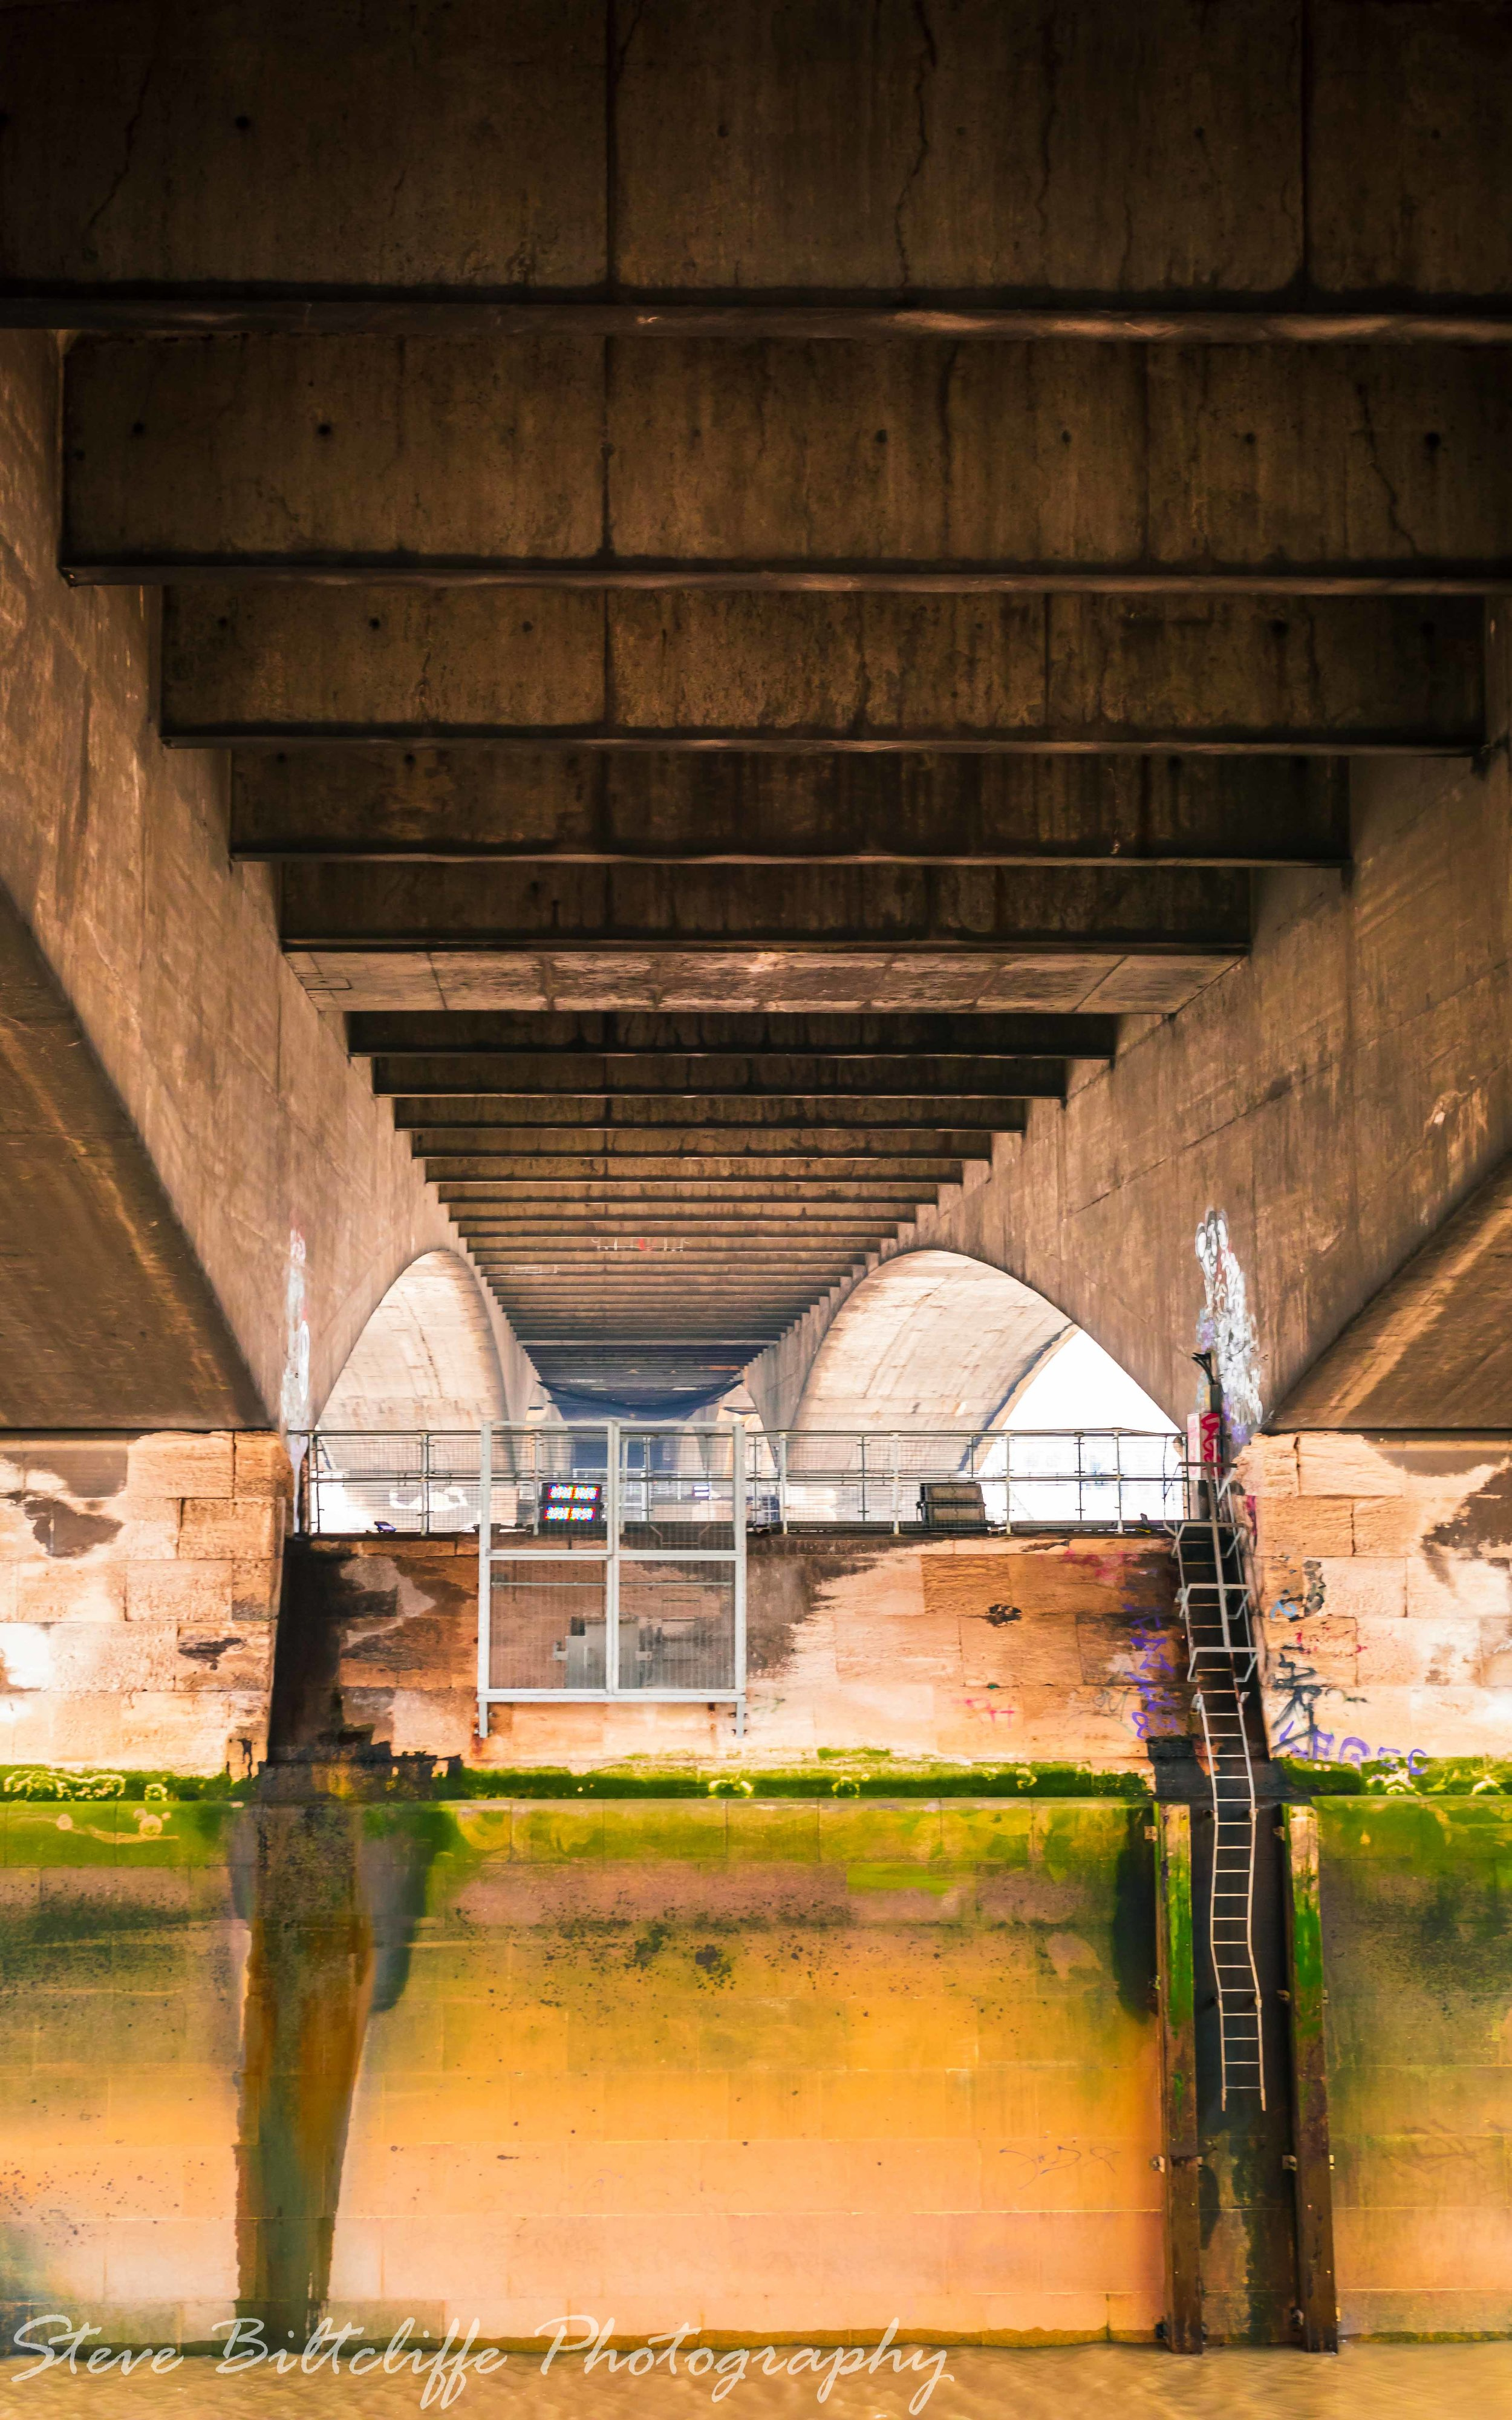 Under Blackfriars Bridge